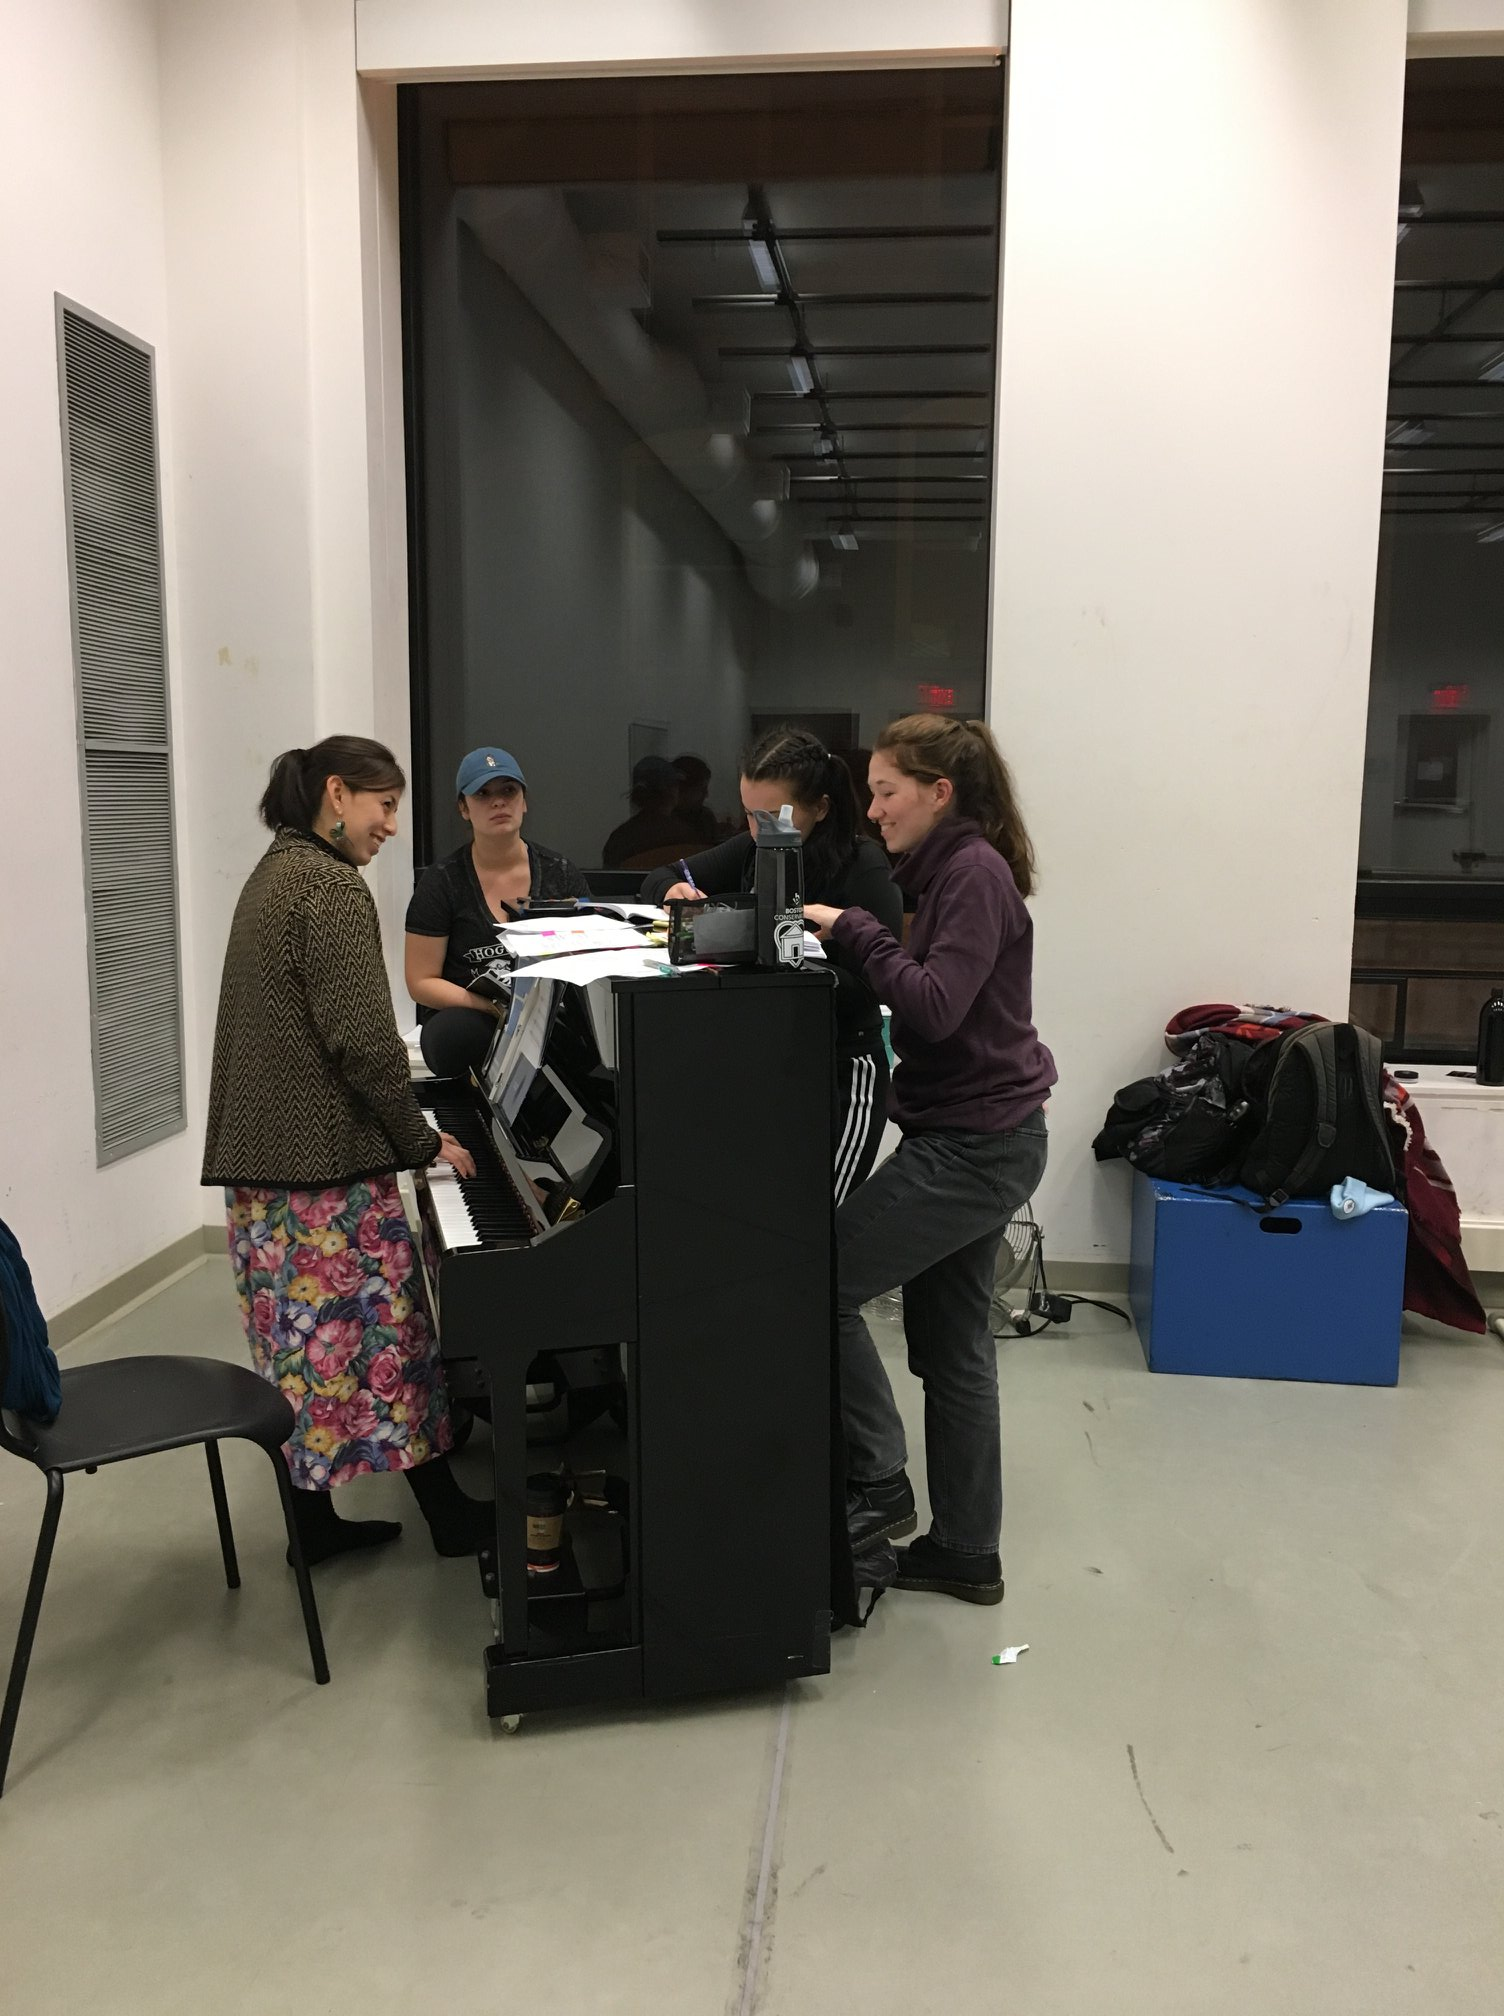 Sectional rehearsal with vocal trio. Photo by Theresa Lang.